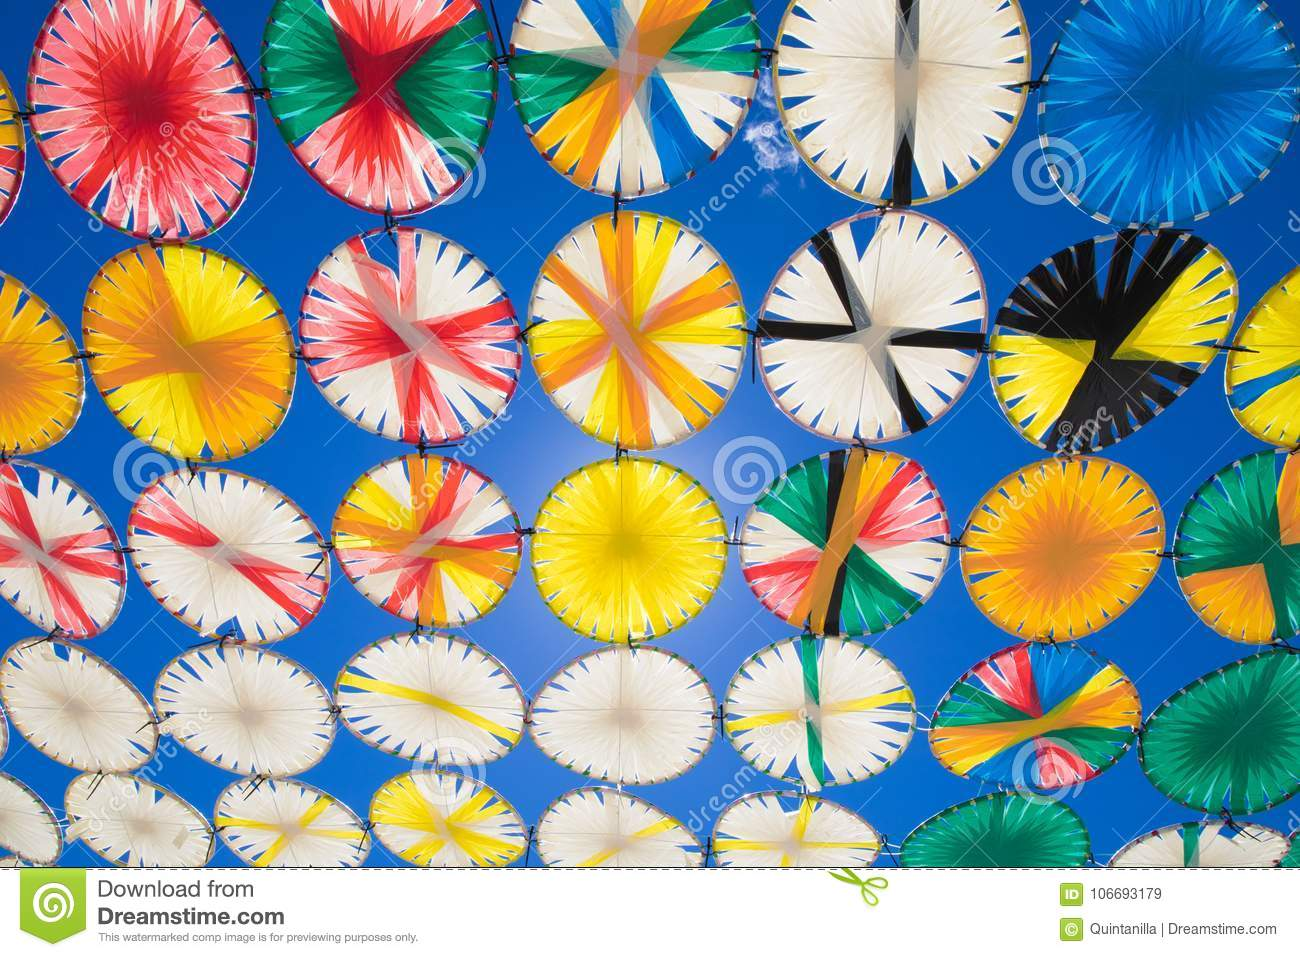 Sunshade multicolored circles row in blue sky horizontal